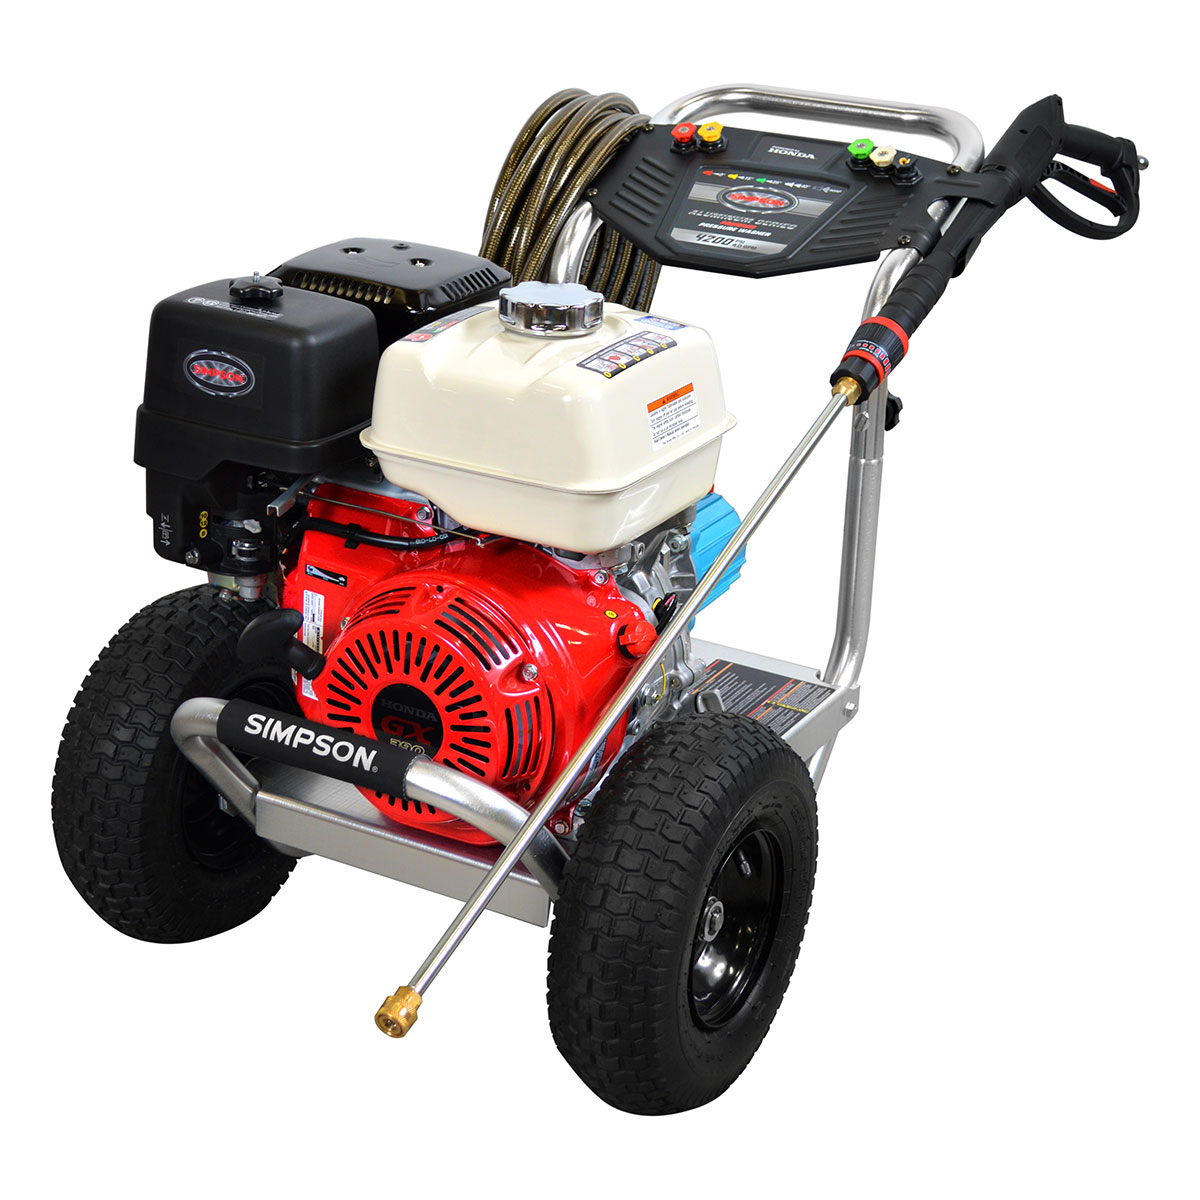 4200 PSI Aluminum Series - Commercial Direct Drive Pressure Washer with a Honda GX390 engine and a 50' hose - ALH4240